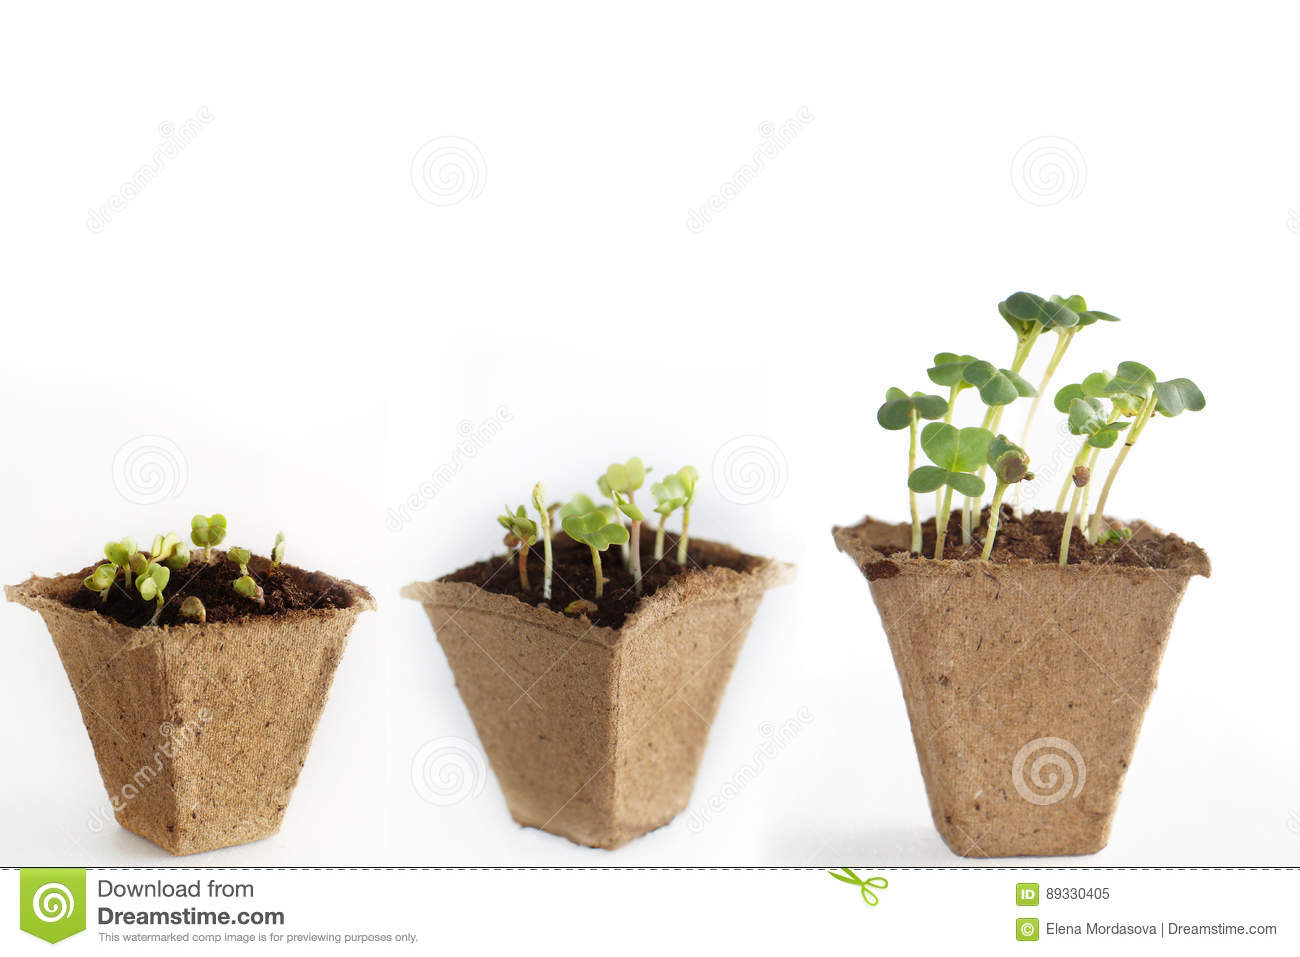 Stages Of Development Of Radish Sprouts Three Peat Pots